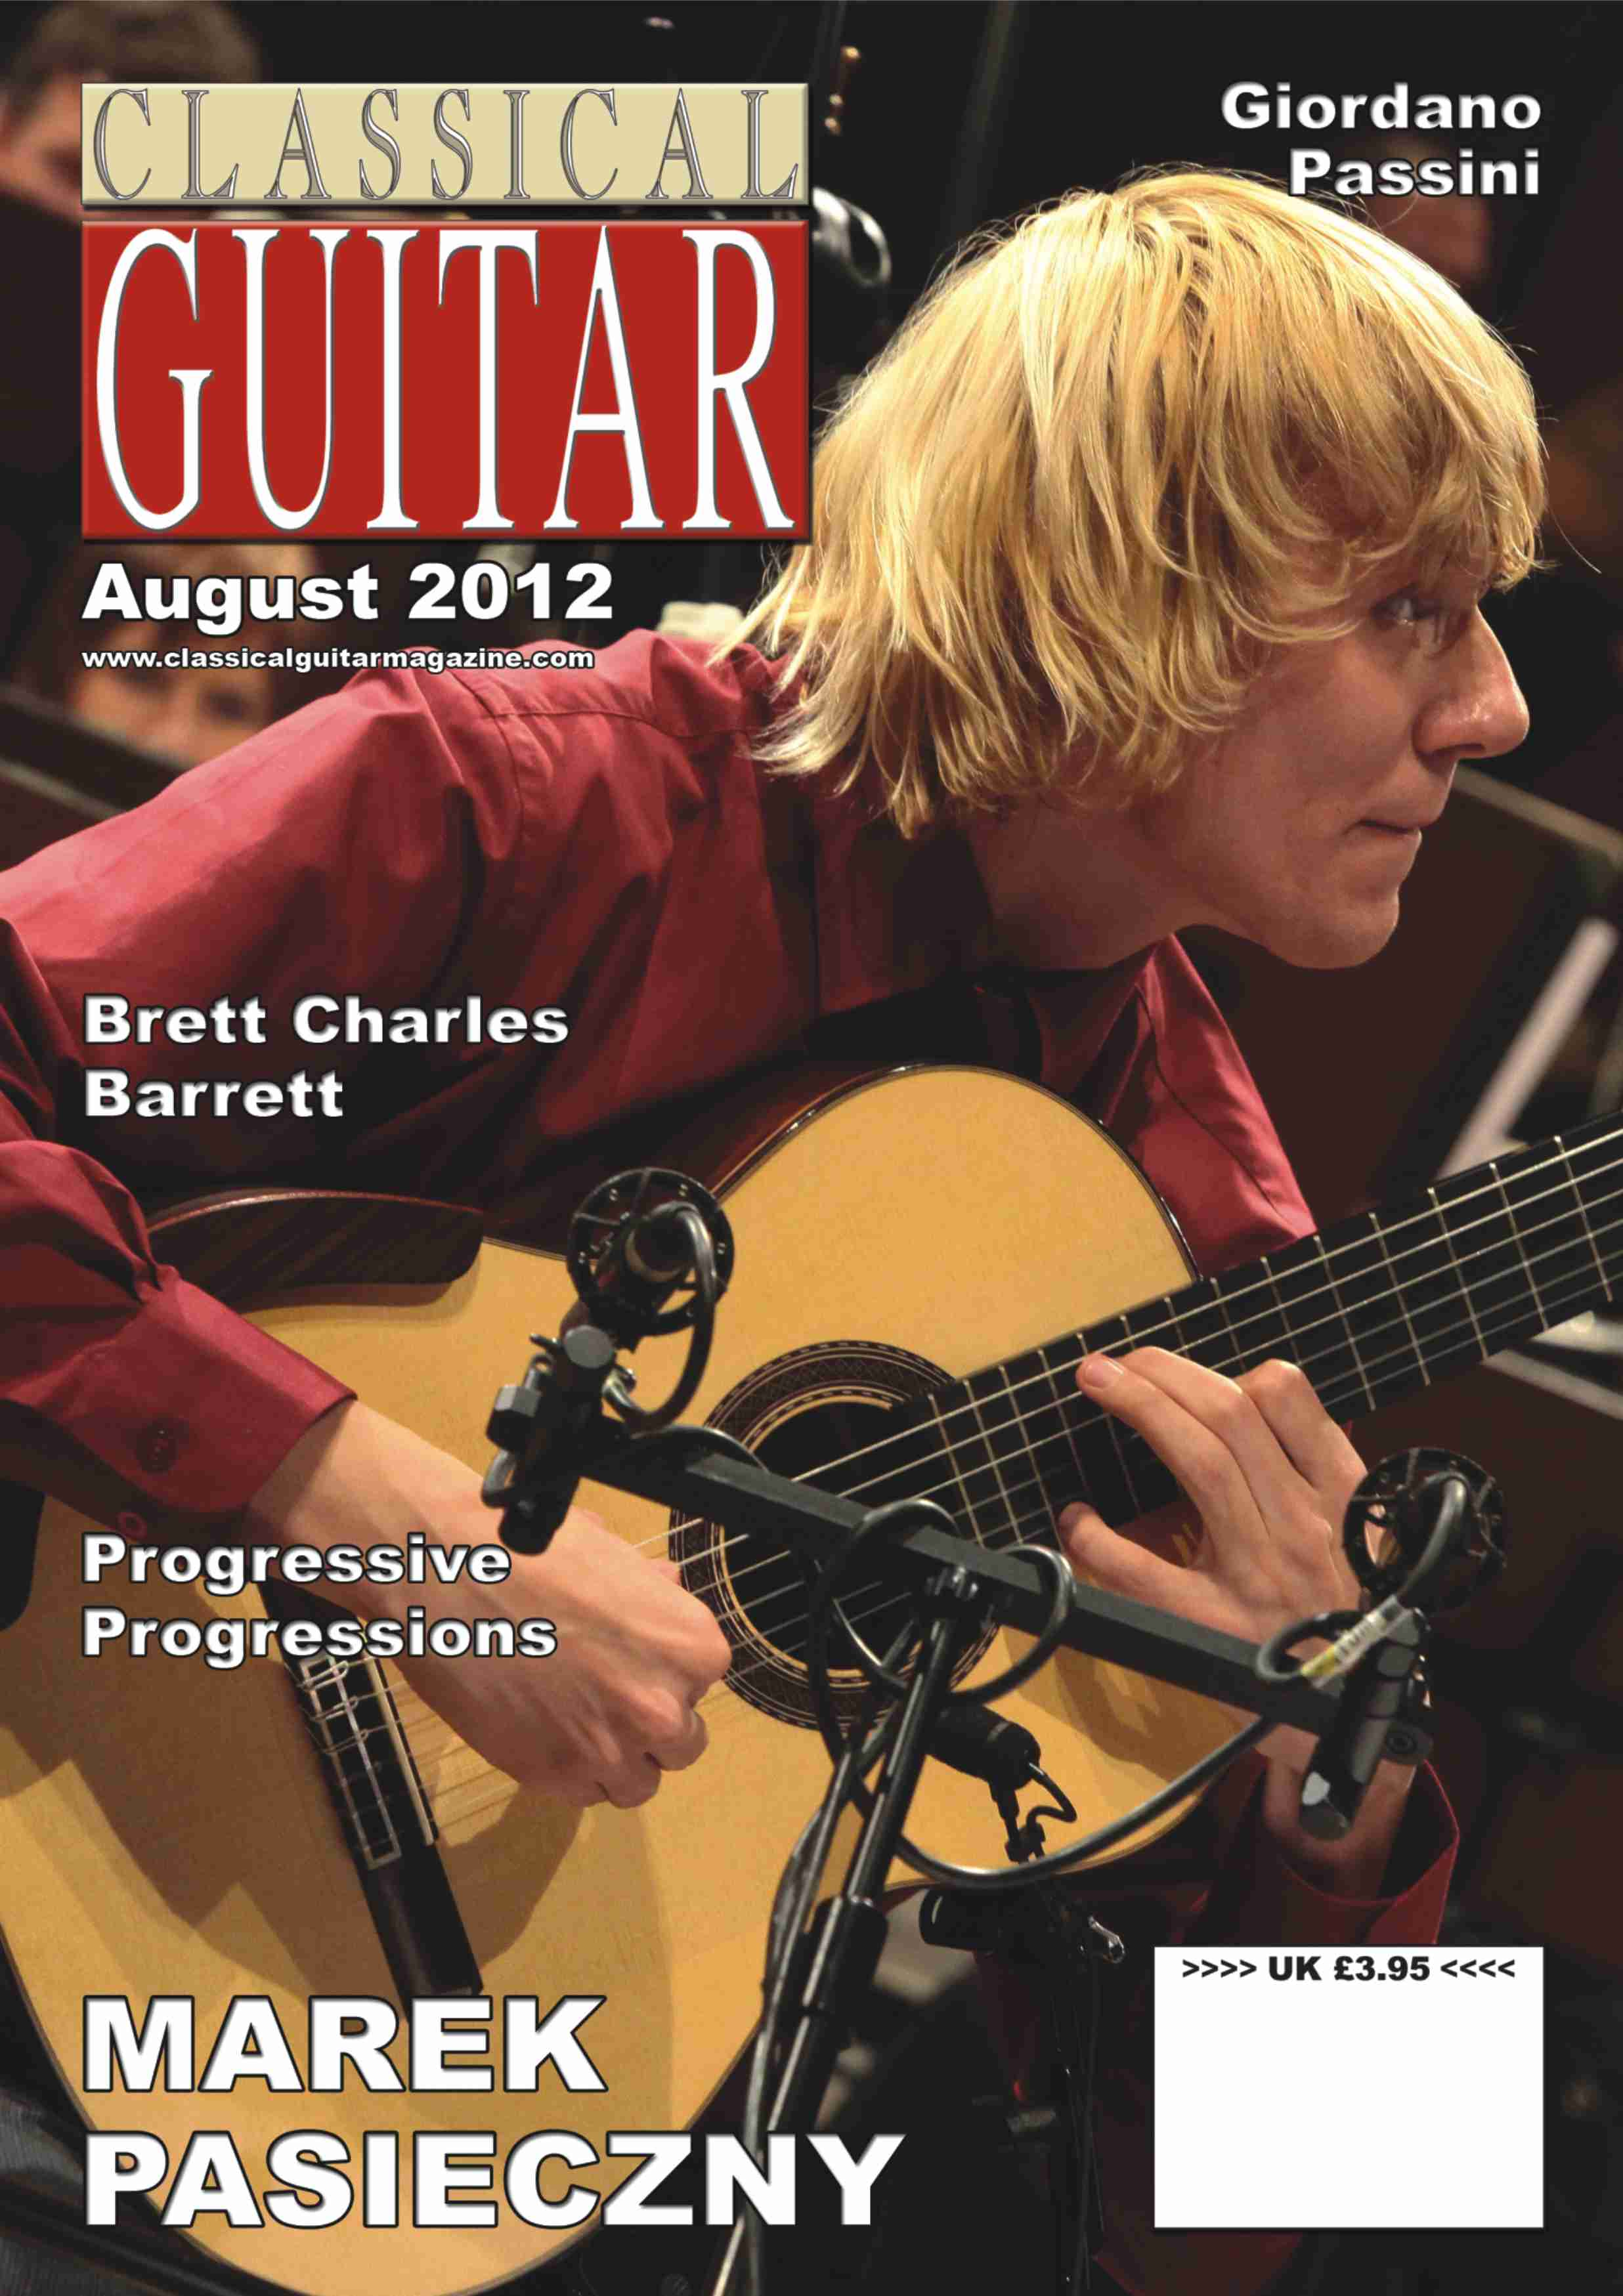 CLASSICAL GUITAR MAGAZINE PASIECZNY 2012 FULL